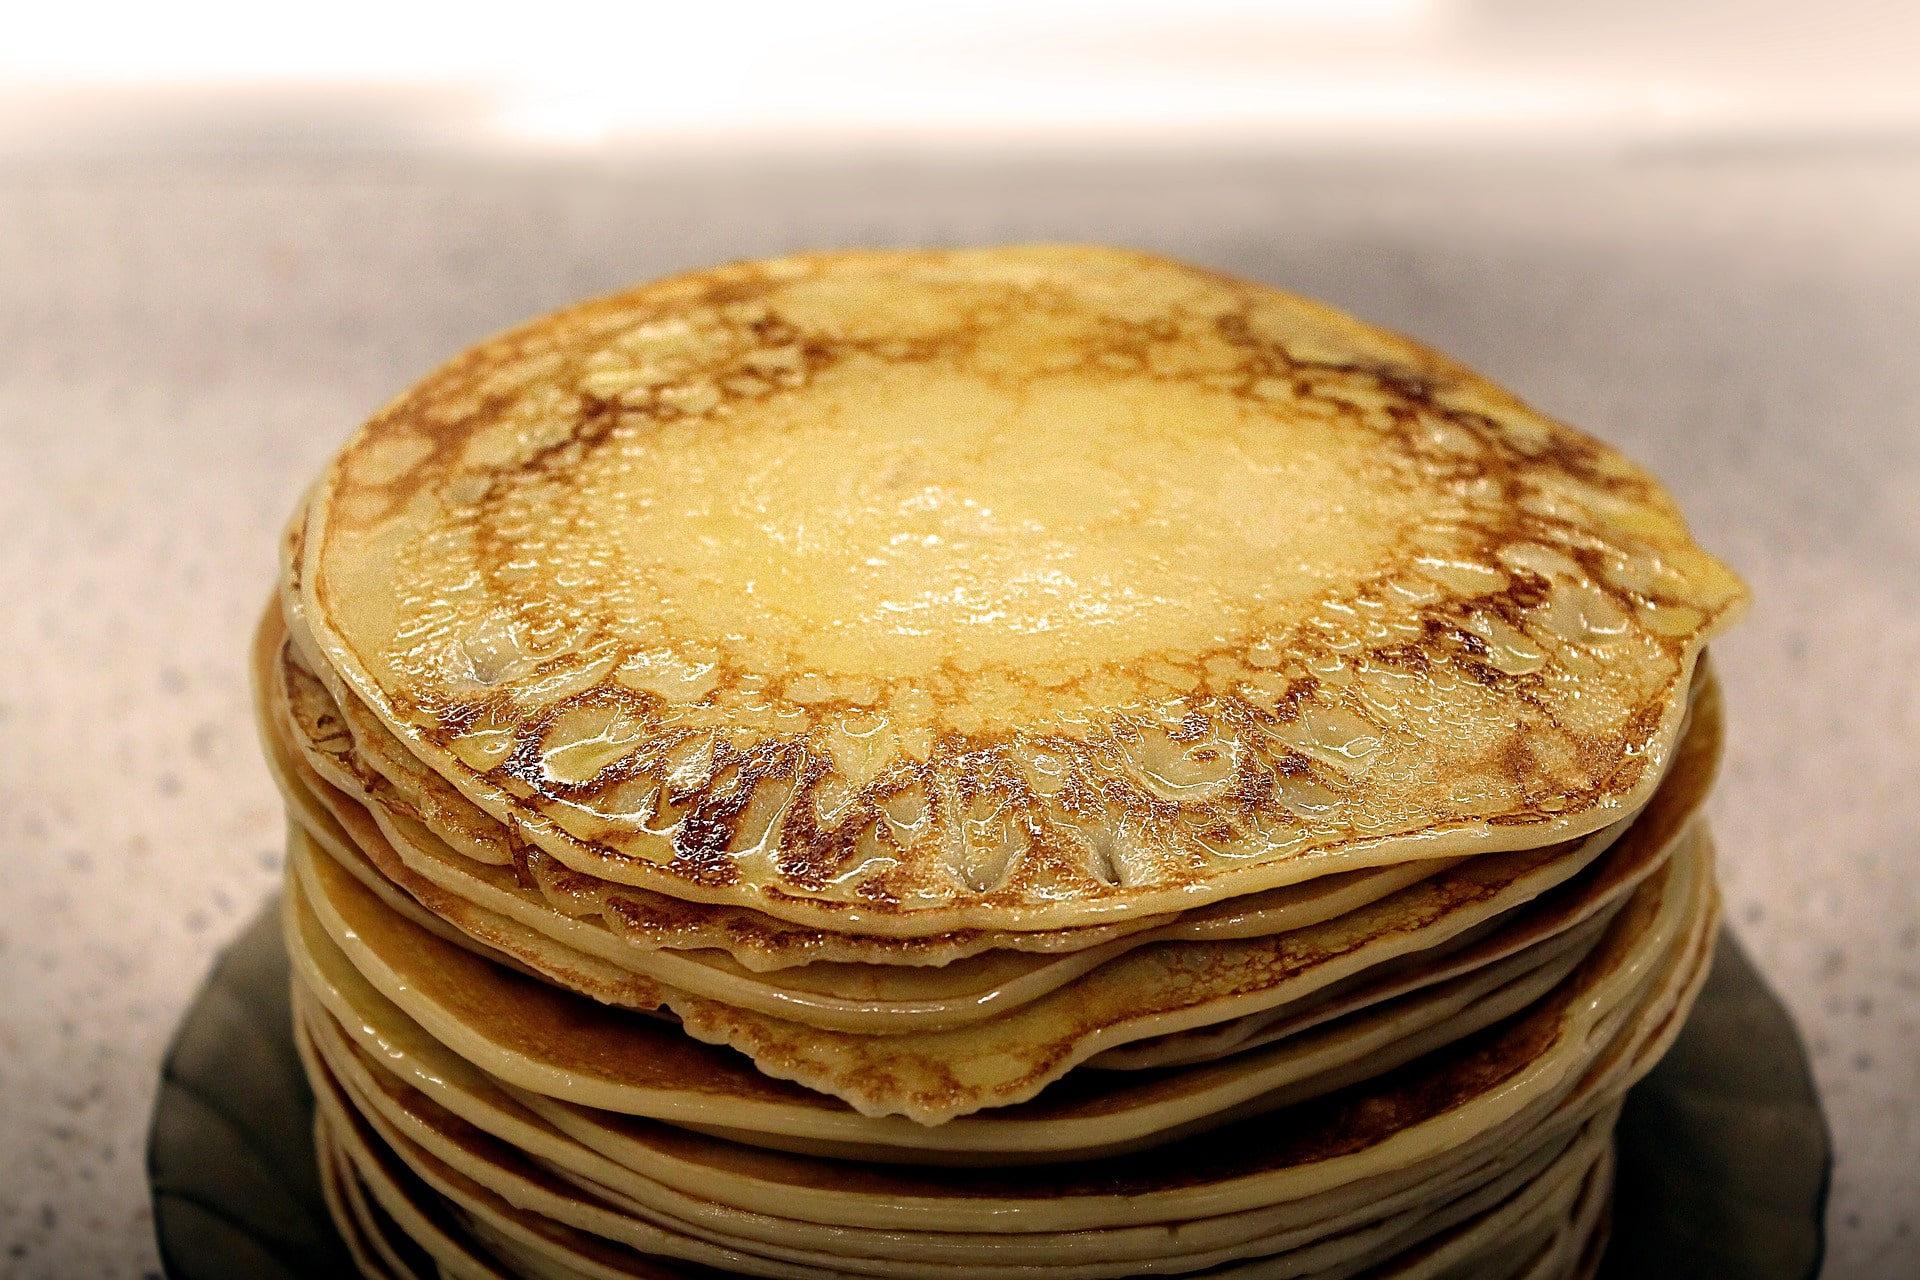 olive oil pancakes are healthier and fluffier